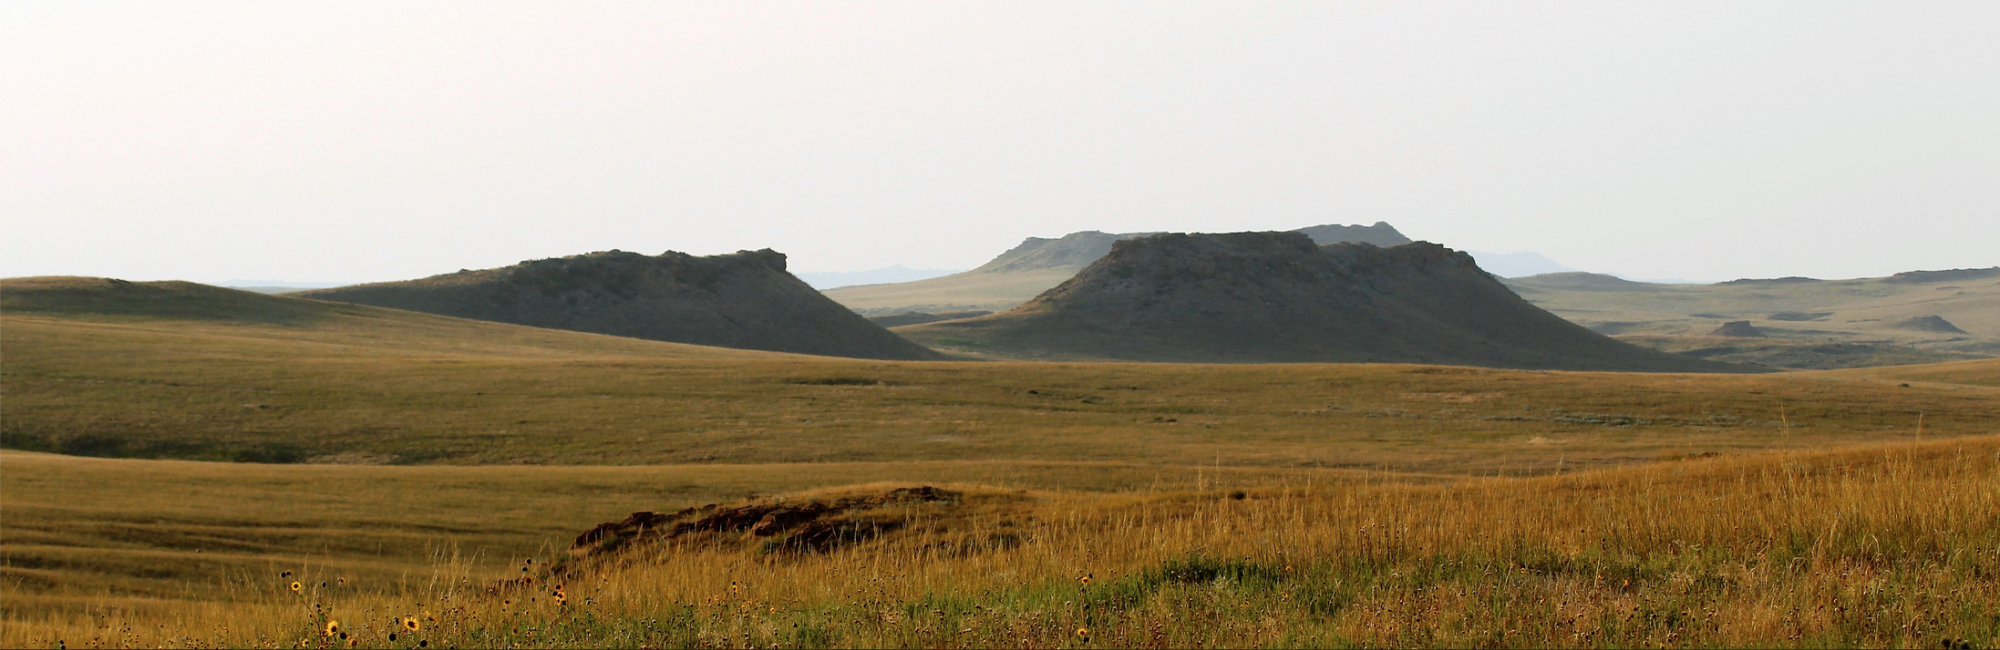 Buttes on the landscape across Thunder Basin National Grassland. Photo by U.S. Department of Agriculture